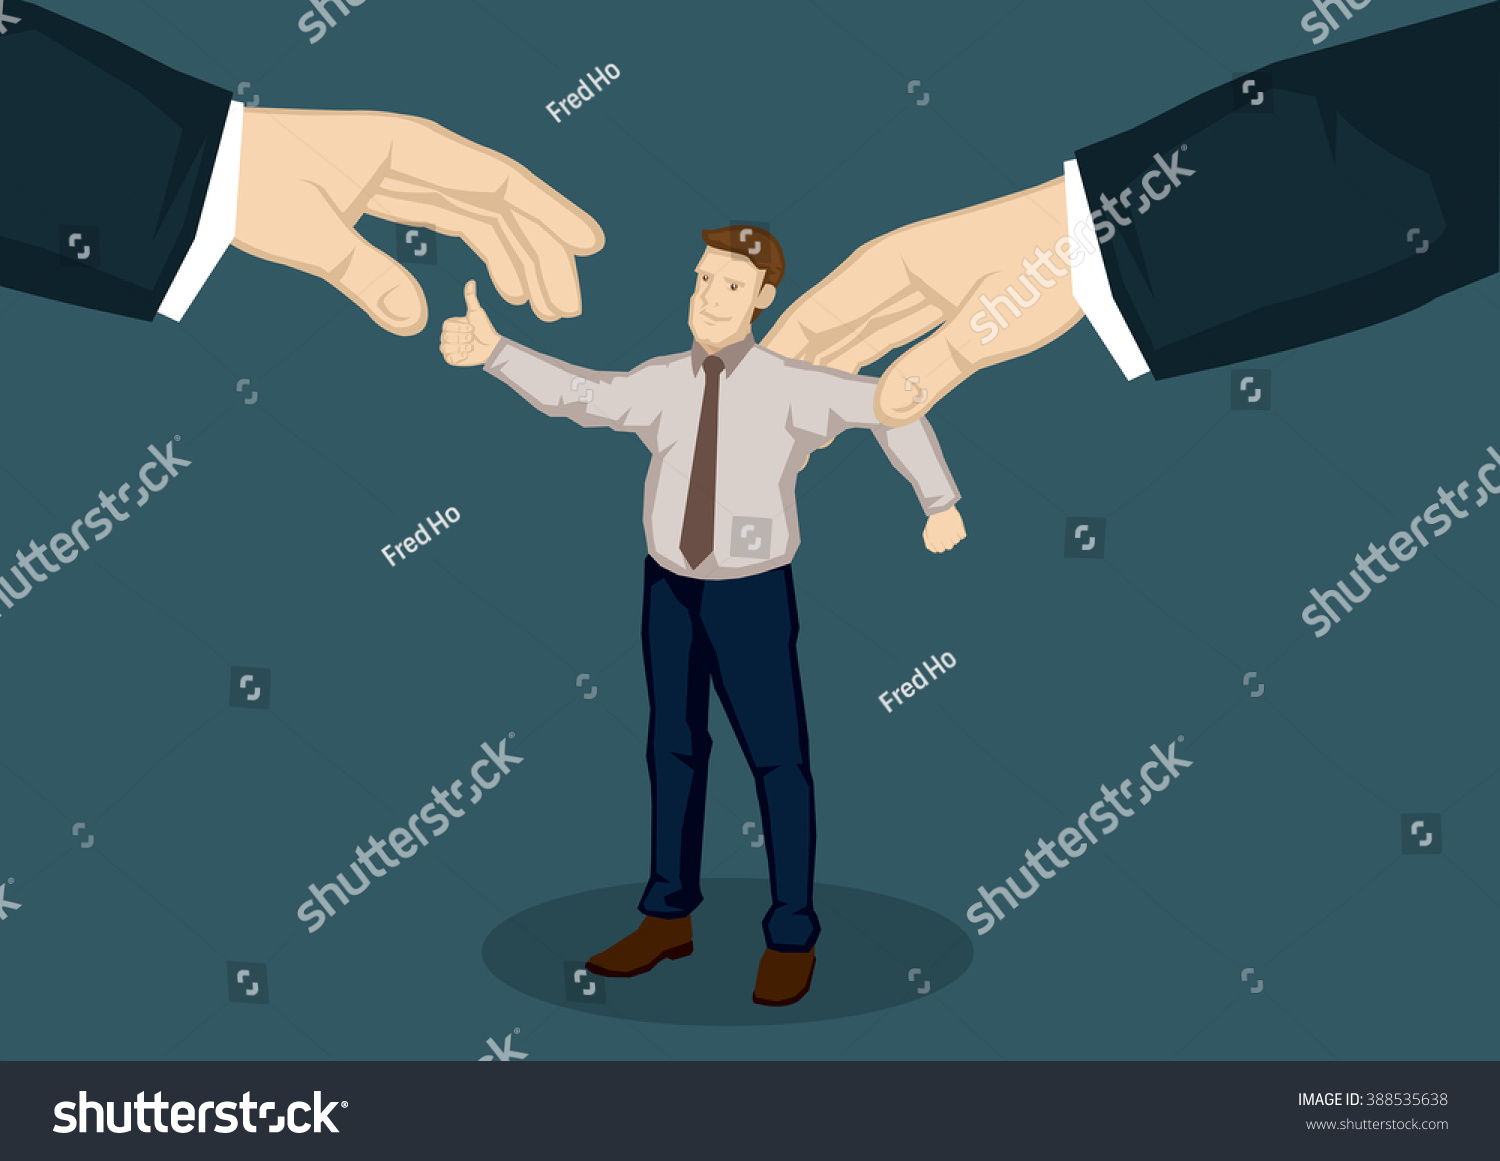 cartoon man thumbs gesture representing good stock vector cartoon man thumbs up gesture representing good worker and two giant hands from the side